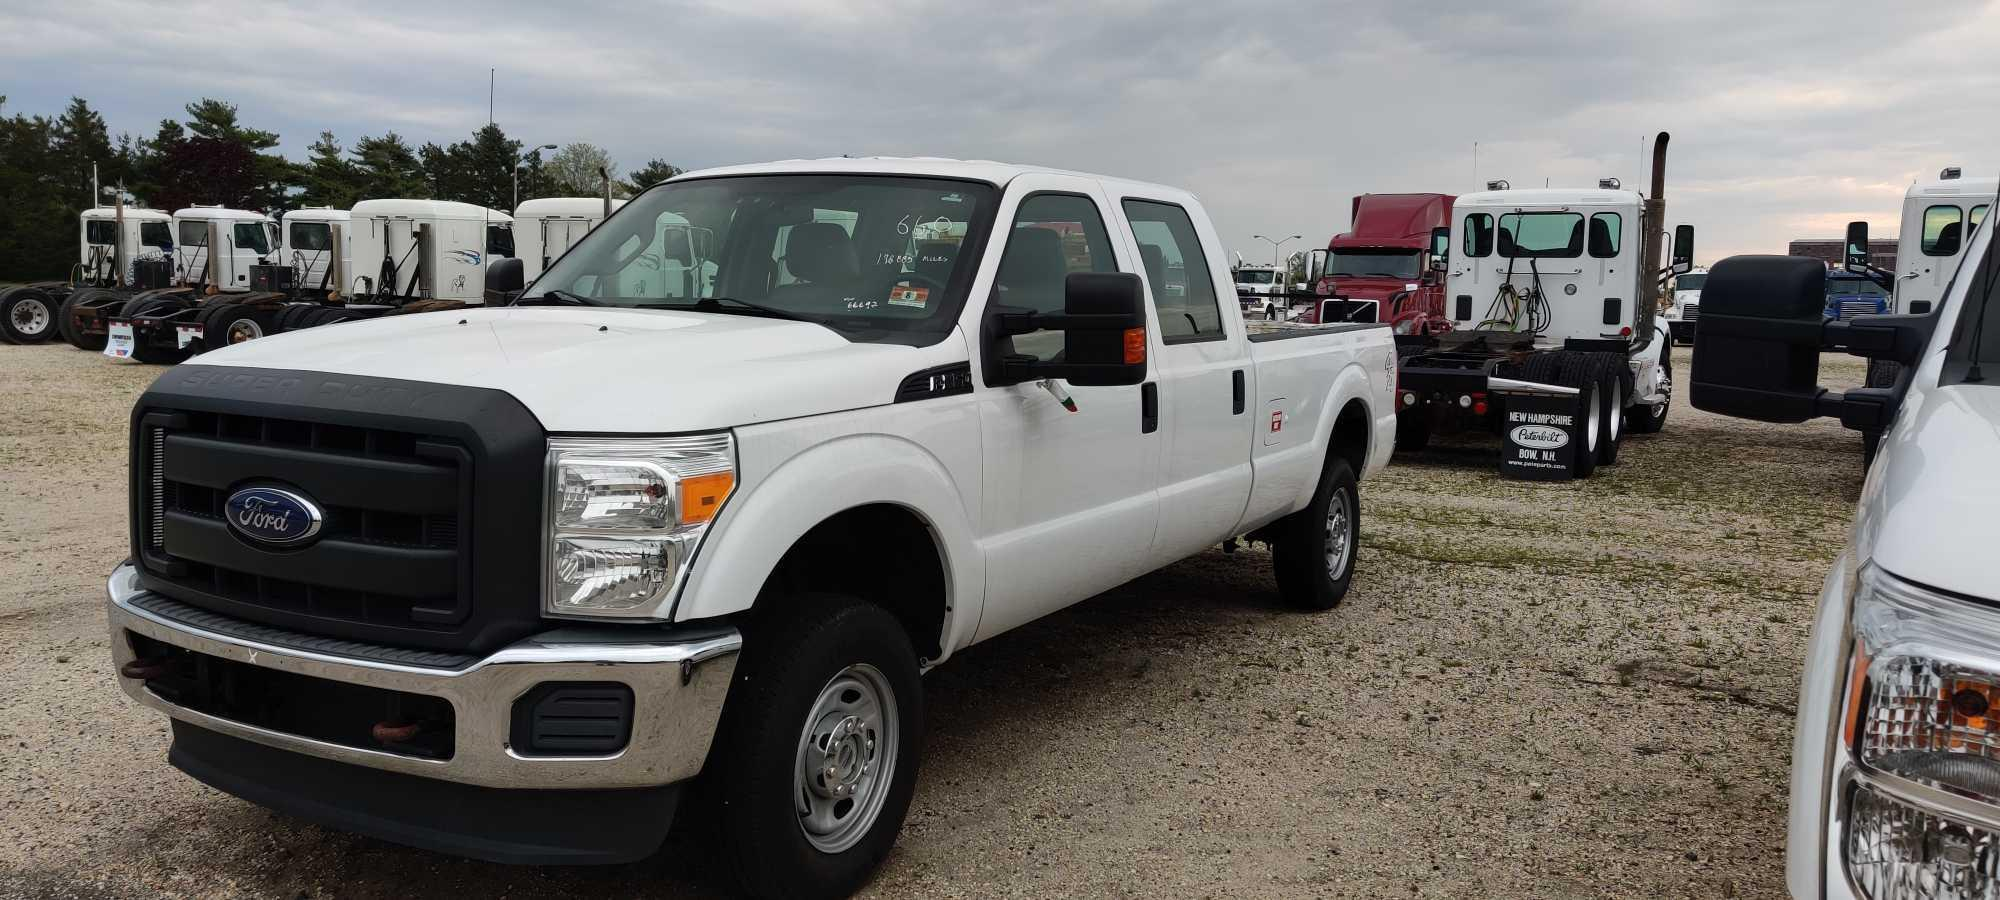 2014 FORD F350 PICKUP TRUCK VN:B66692 4x4 Powered By